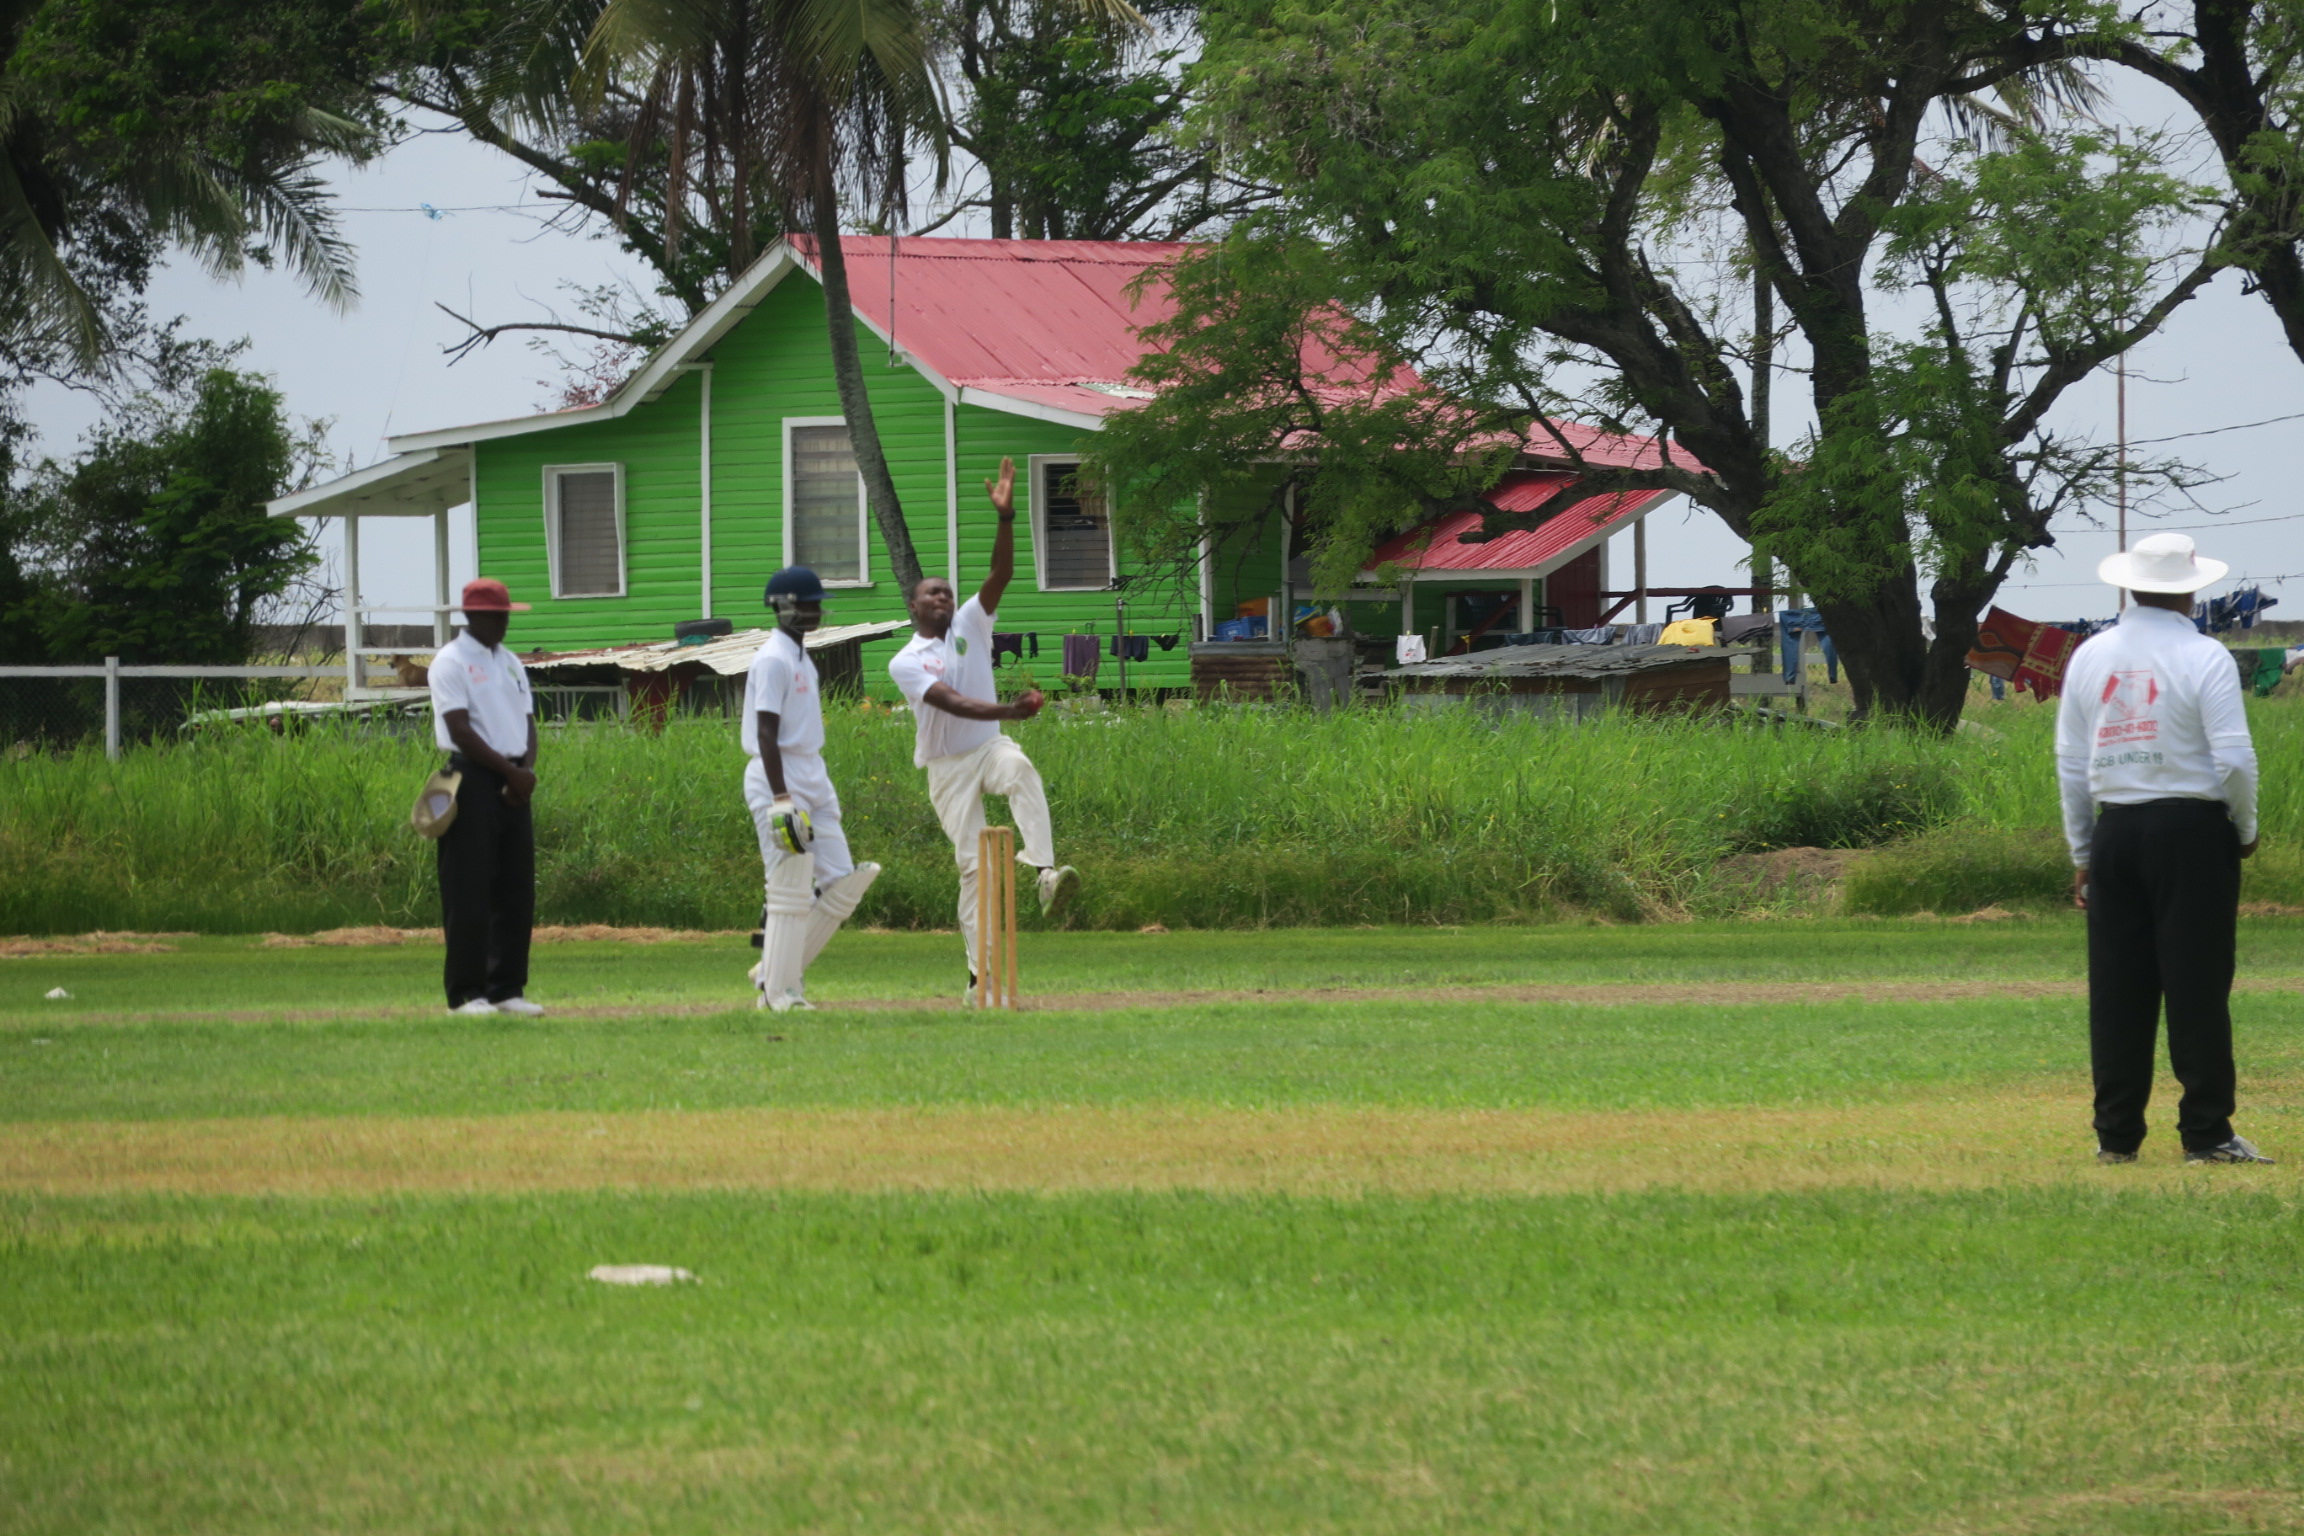 A former British colony, Guyana's national past time is cricket. Grab a cooler of food and drinks and head over to the  Georgetown Cricket Club  to take in a match.